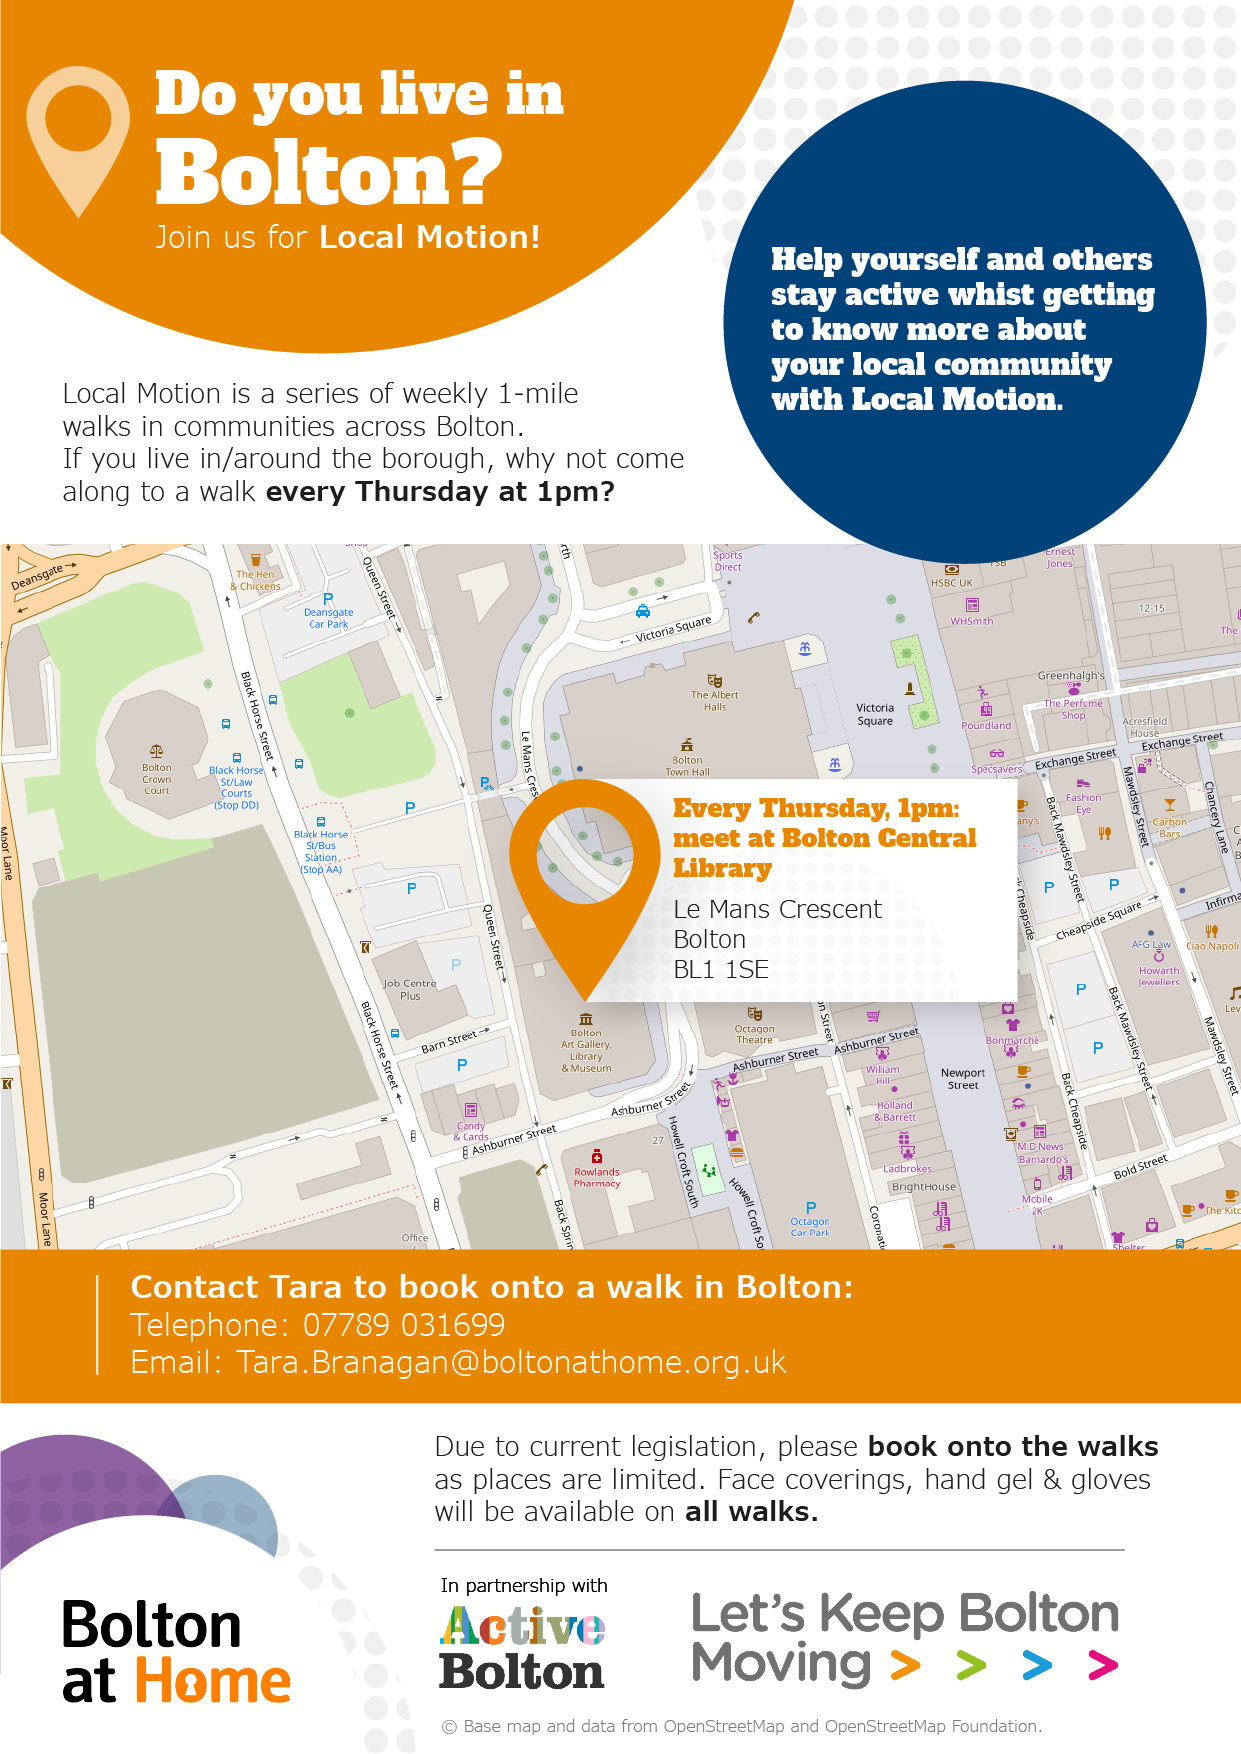 Poster displaying details of Local Motion walks in Bolton Town Centre. These details are available in text form using the table in the 'full Local Motion walks schedule below.